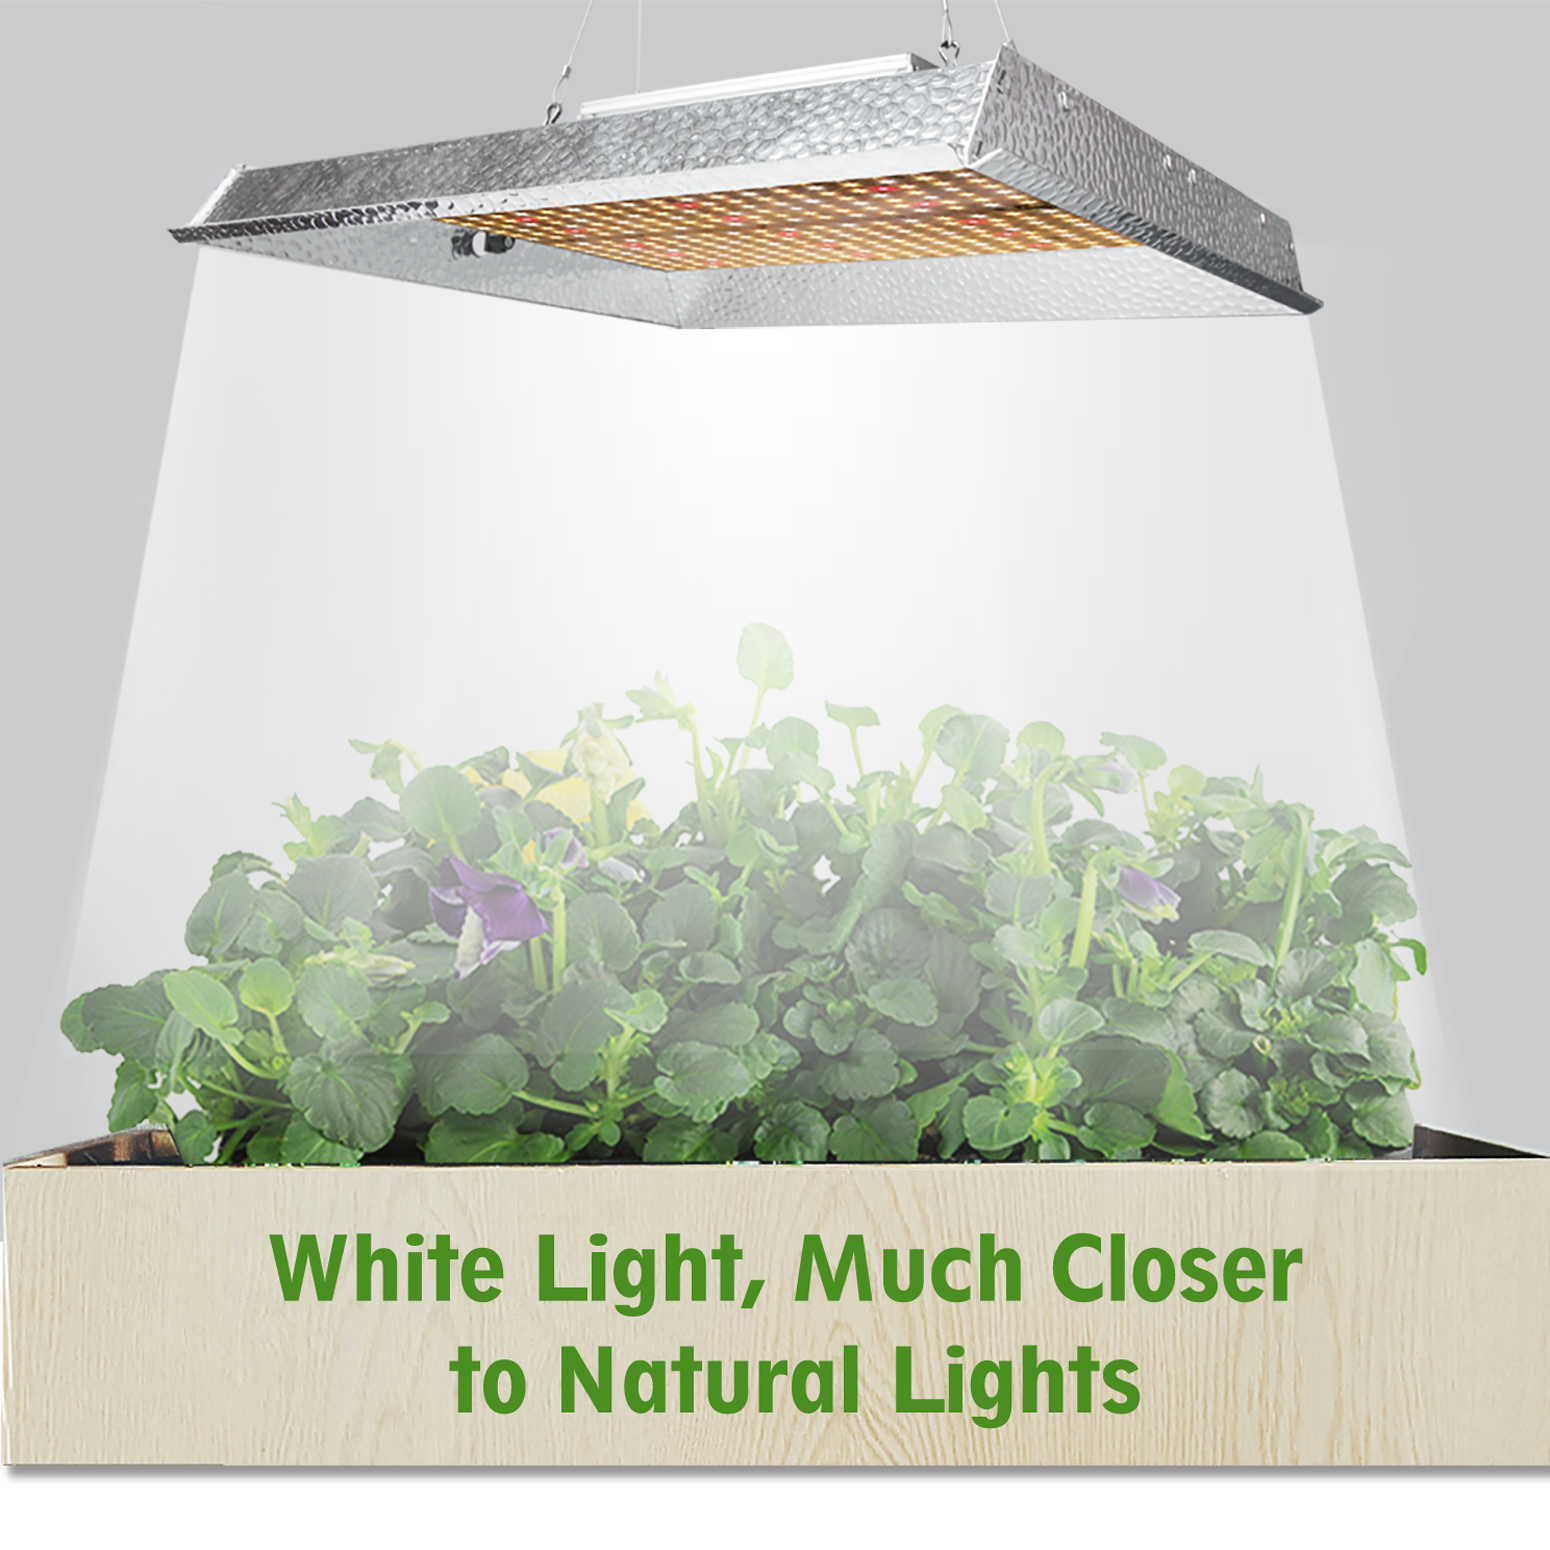 Mars Hydro Ts 1000w Led Grow Lights Full Spectrum Veg